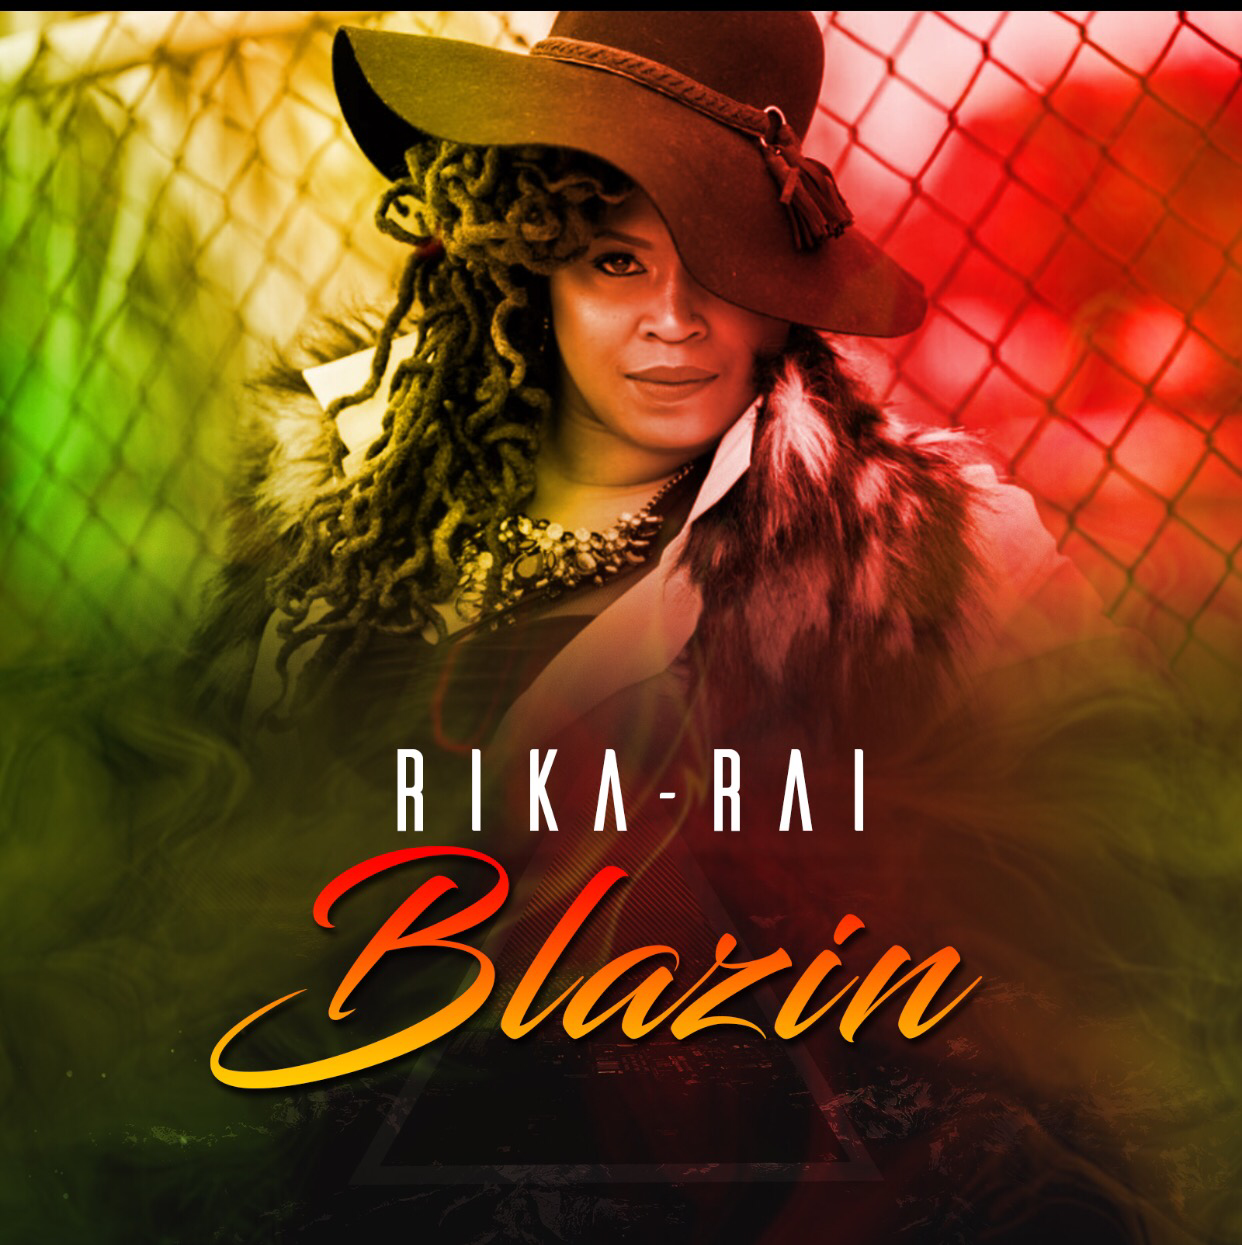 Rika - Rai New Single Blazin